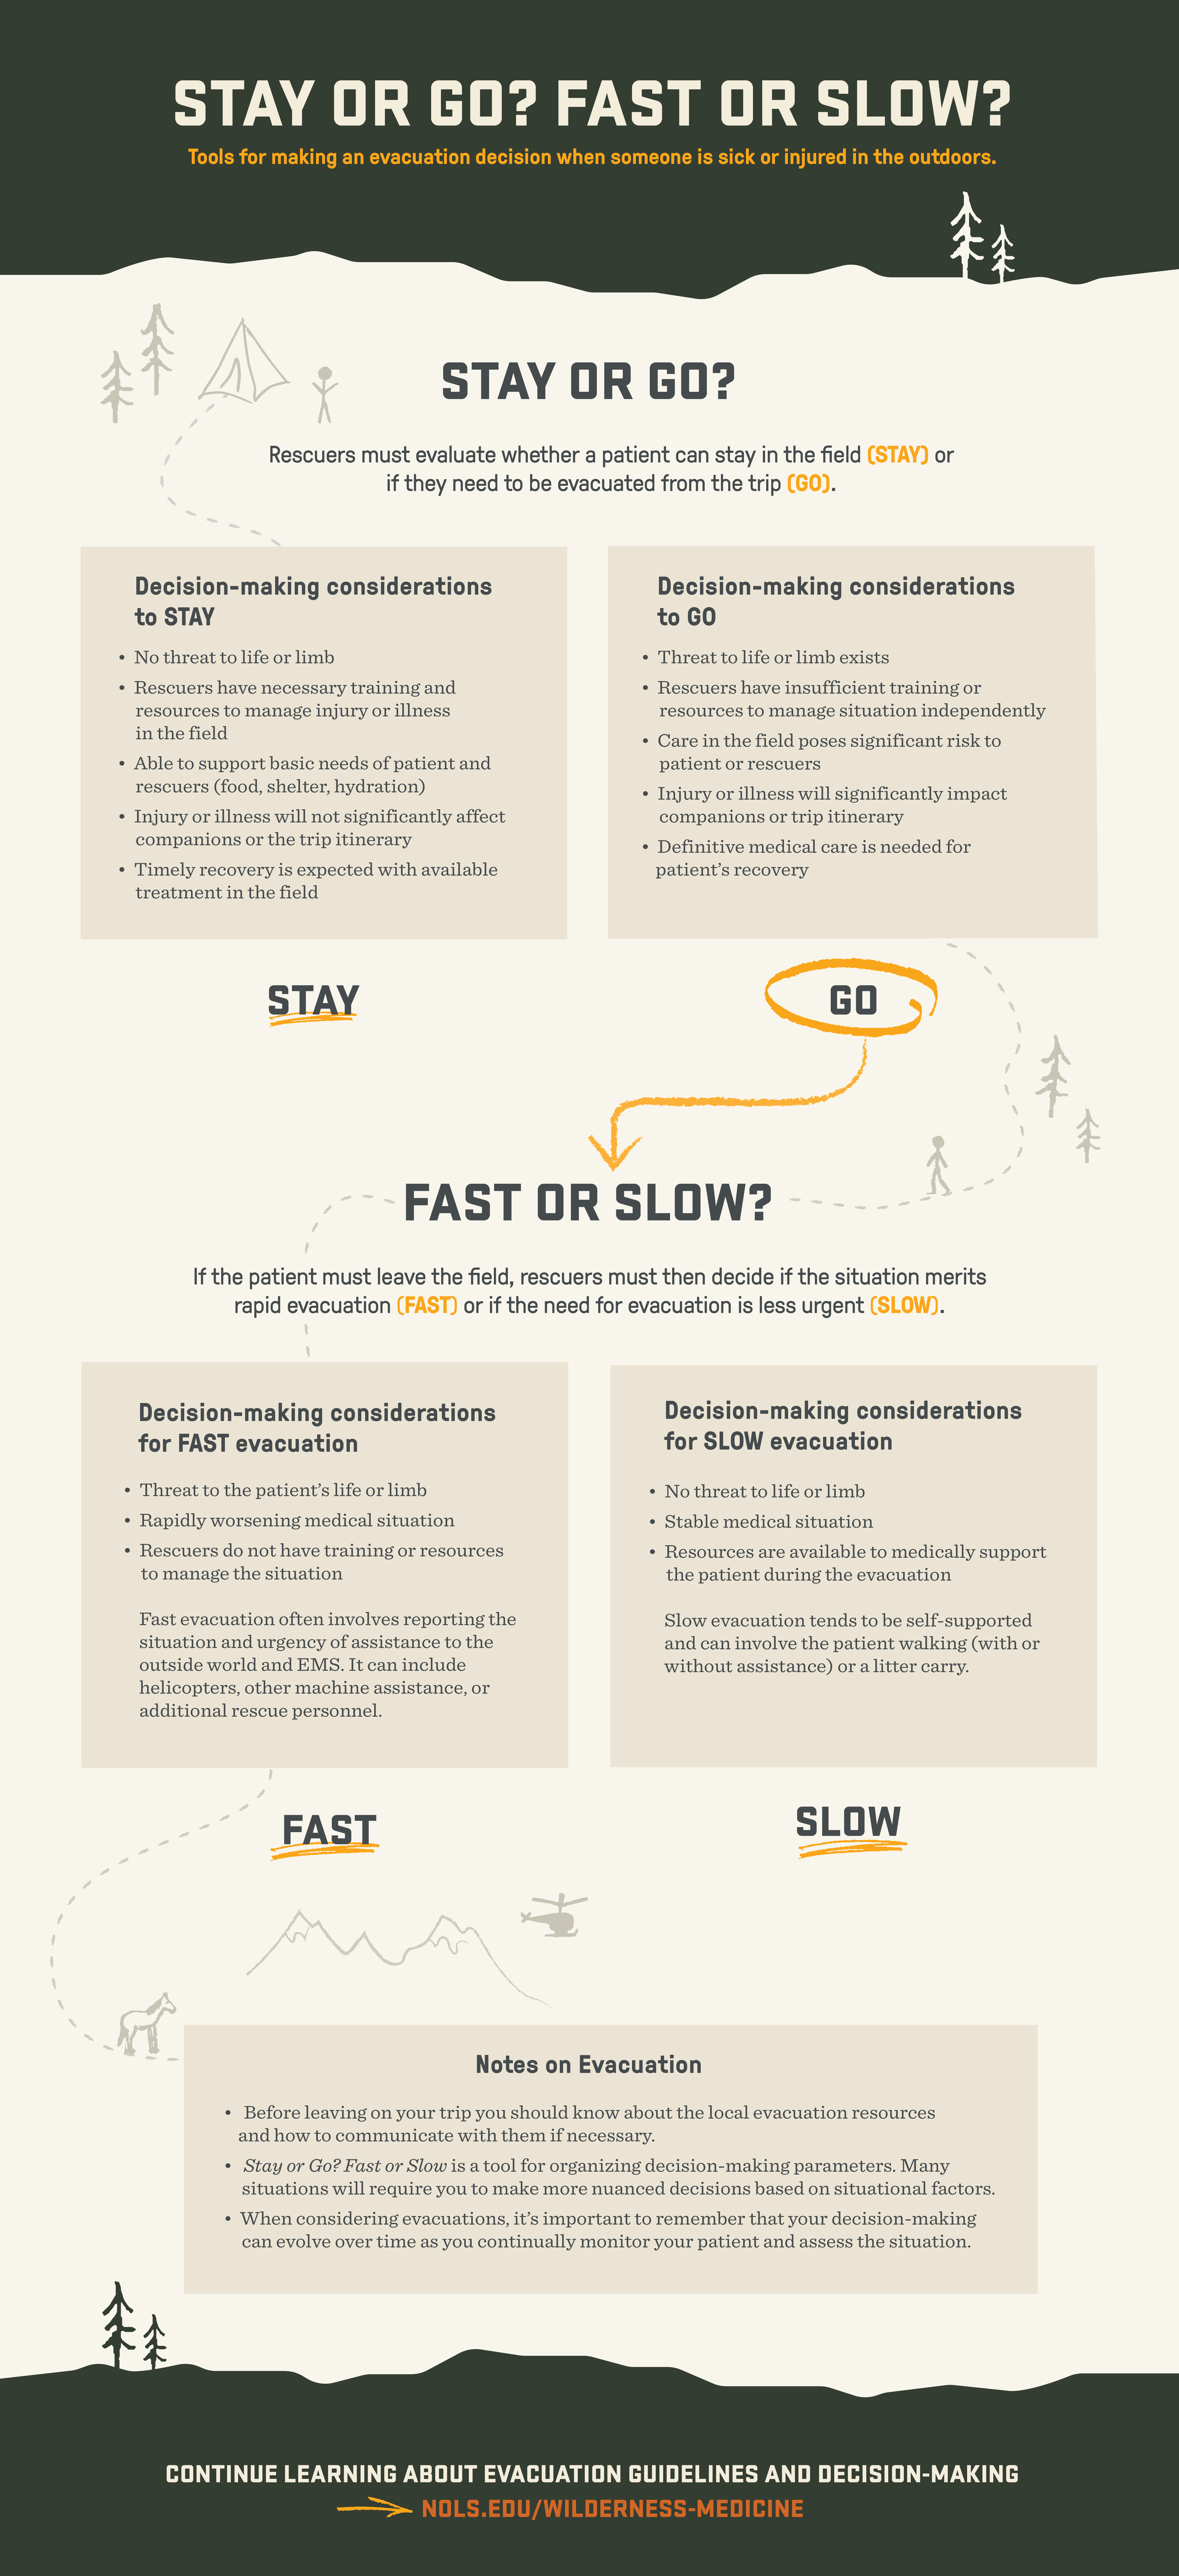 Stay or go? Fast or slow? infographic for making evacuation decisions